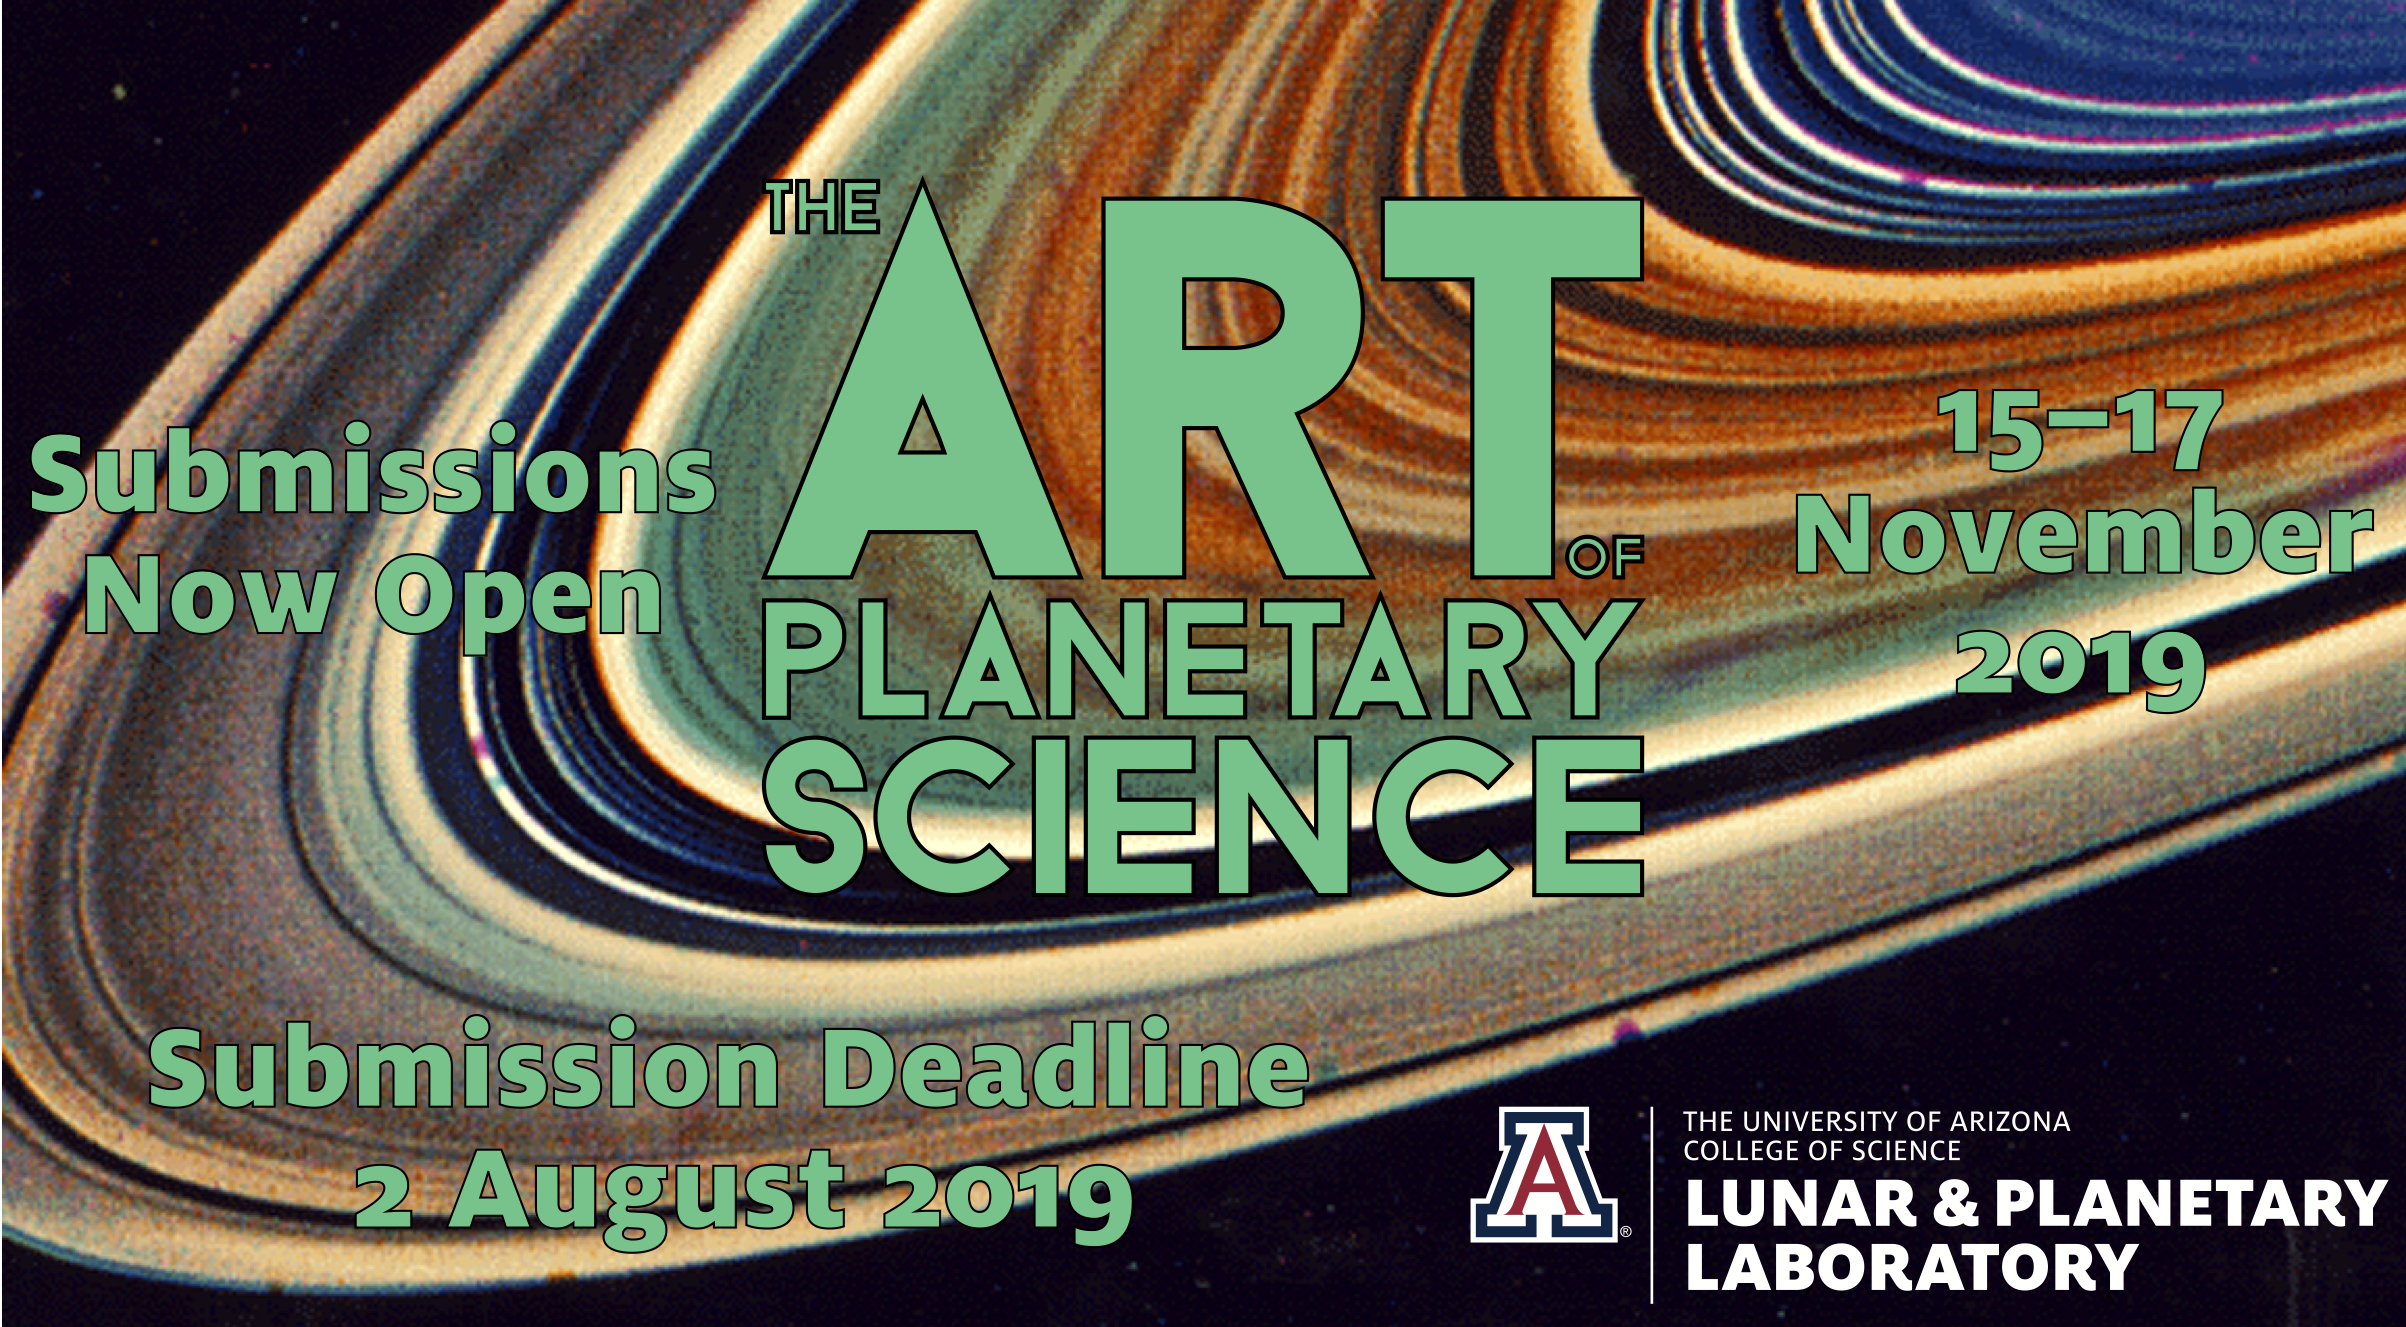 The Art of Planetary Science 2019 Exhibition